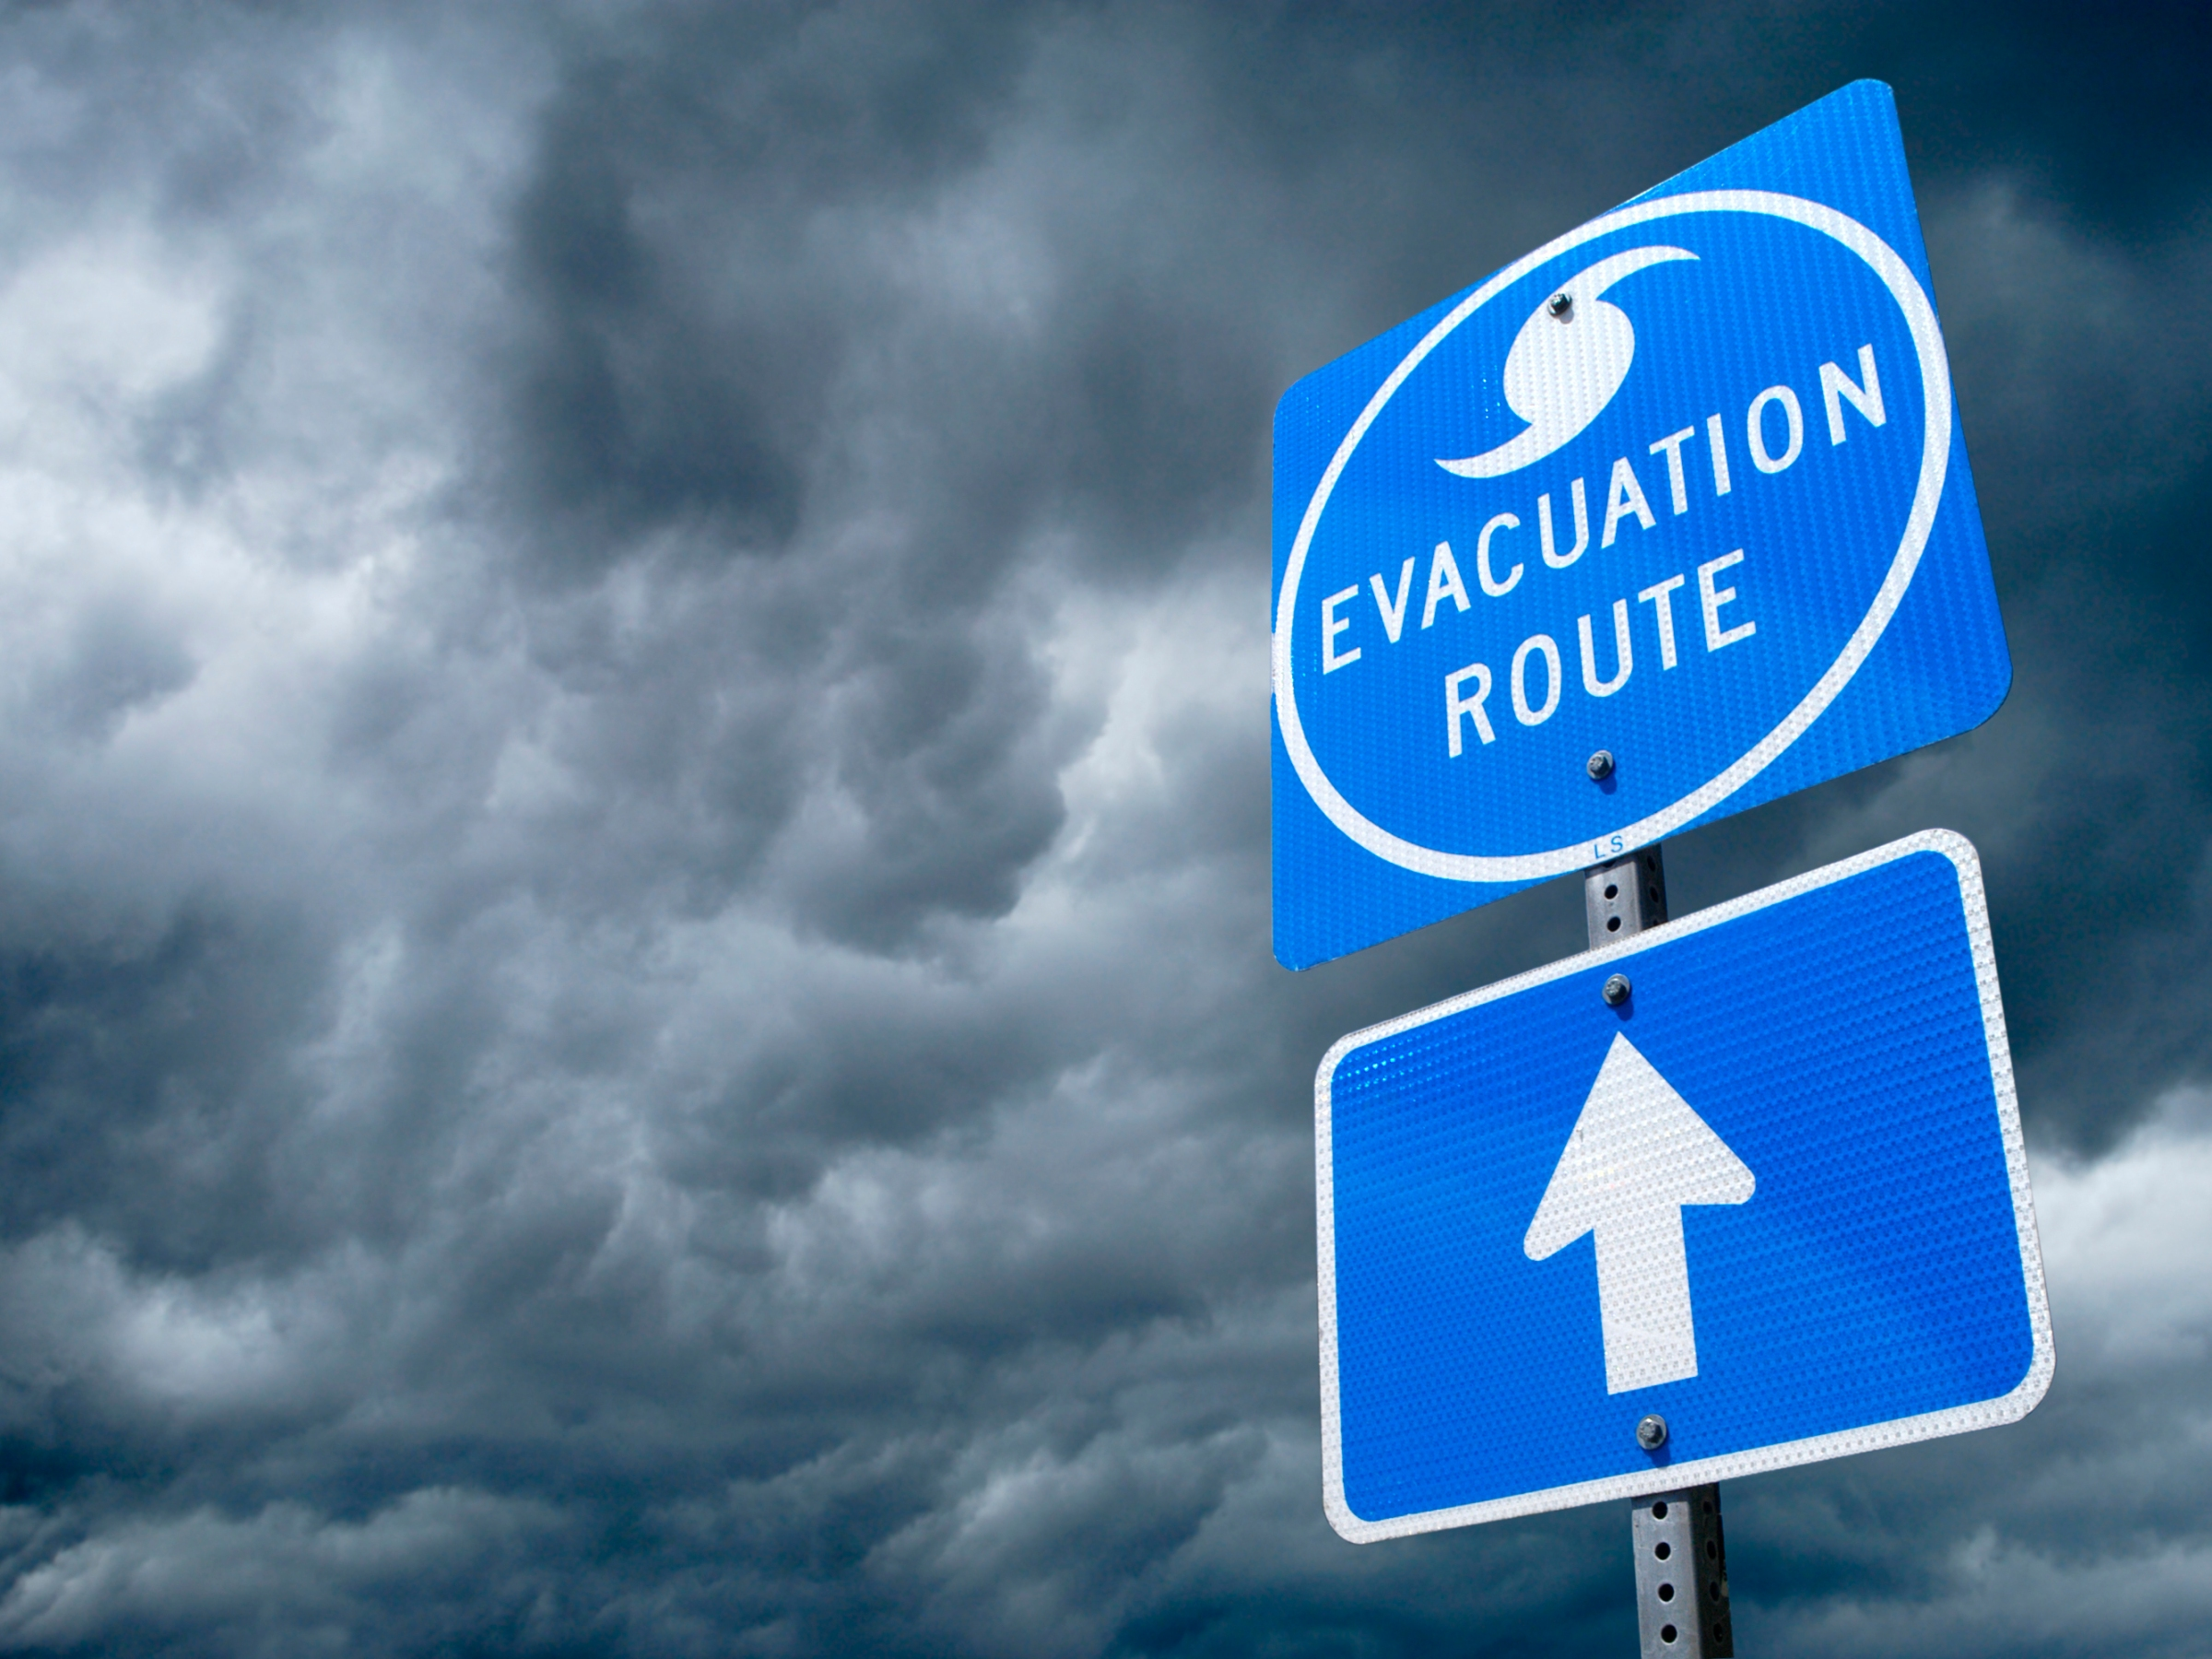 Storm Evacuation Planning